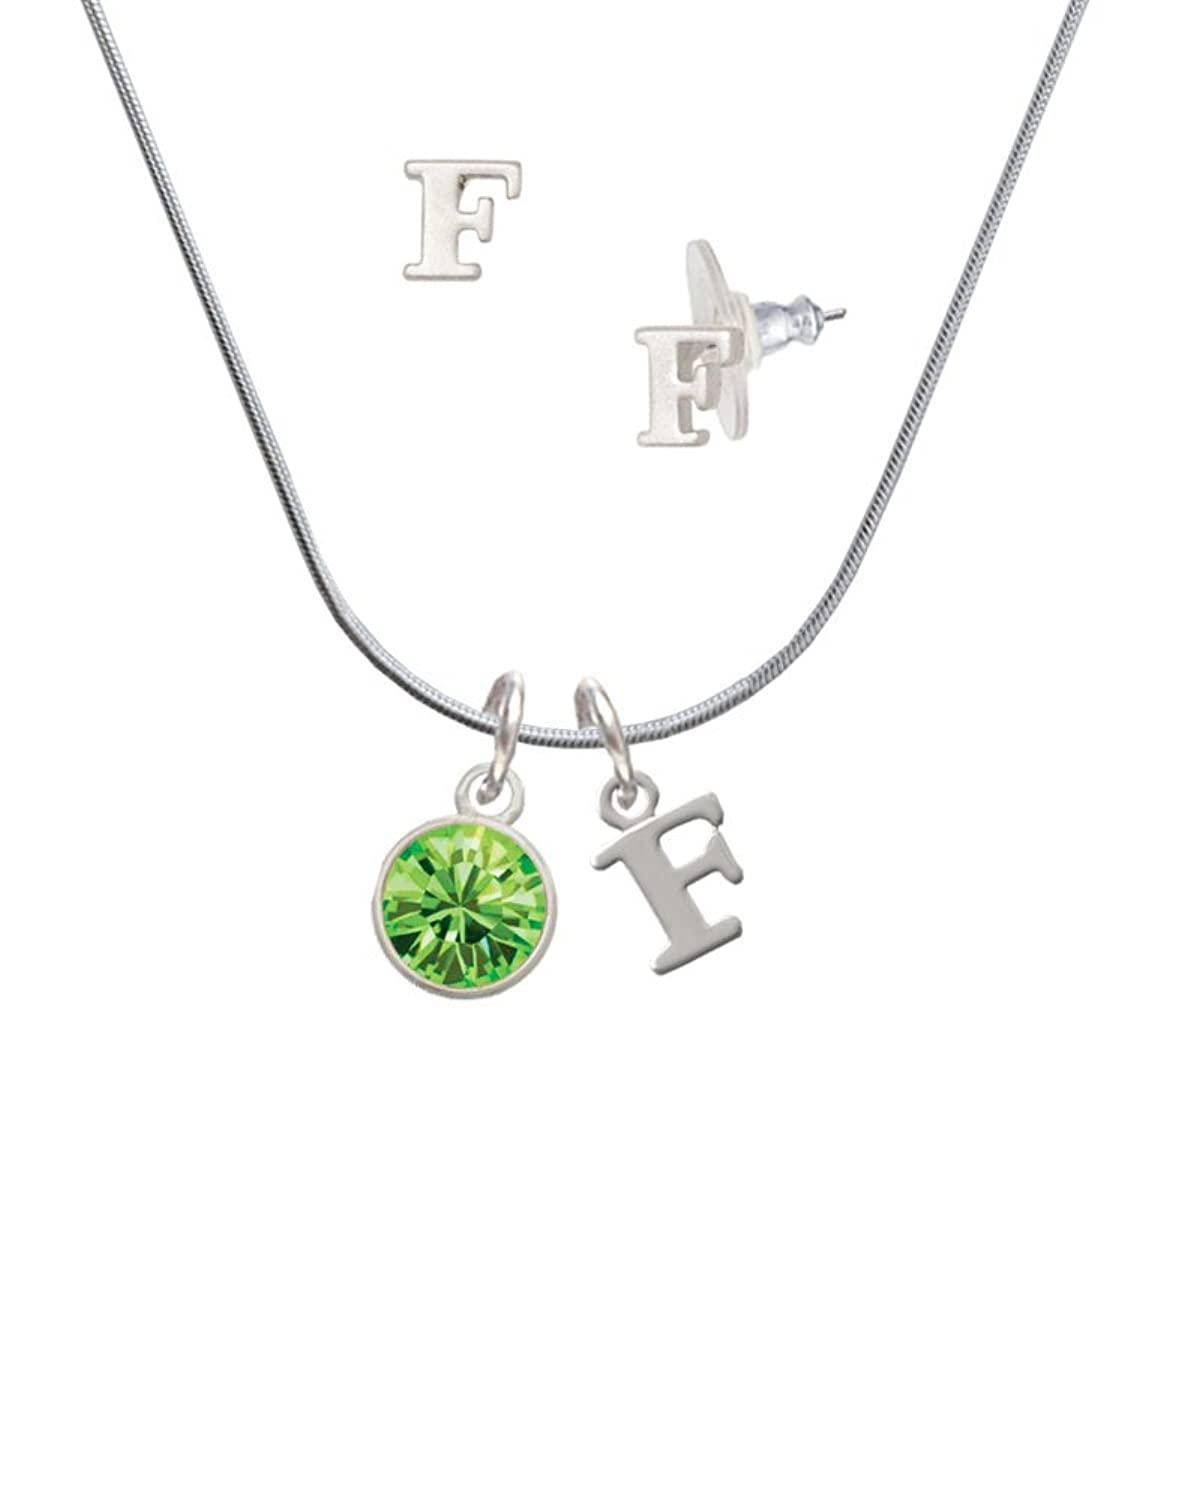 10mm Lime Green Oktant Crystal Drop - F Initial Charm Necklace and Stud Earrings Jewelry Set